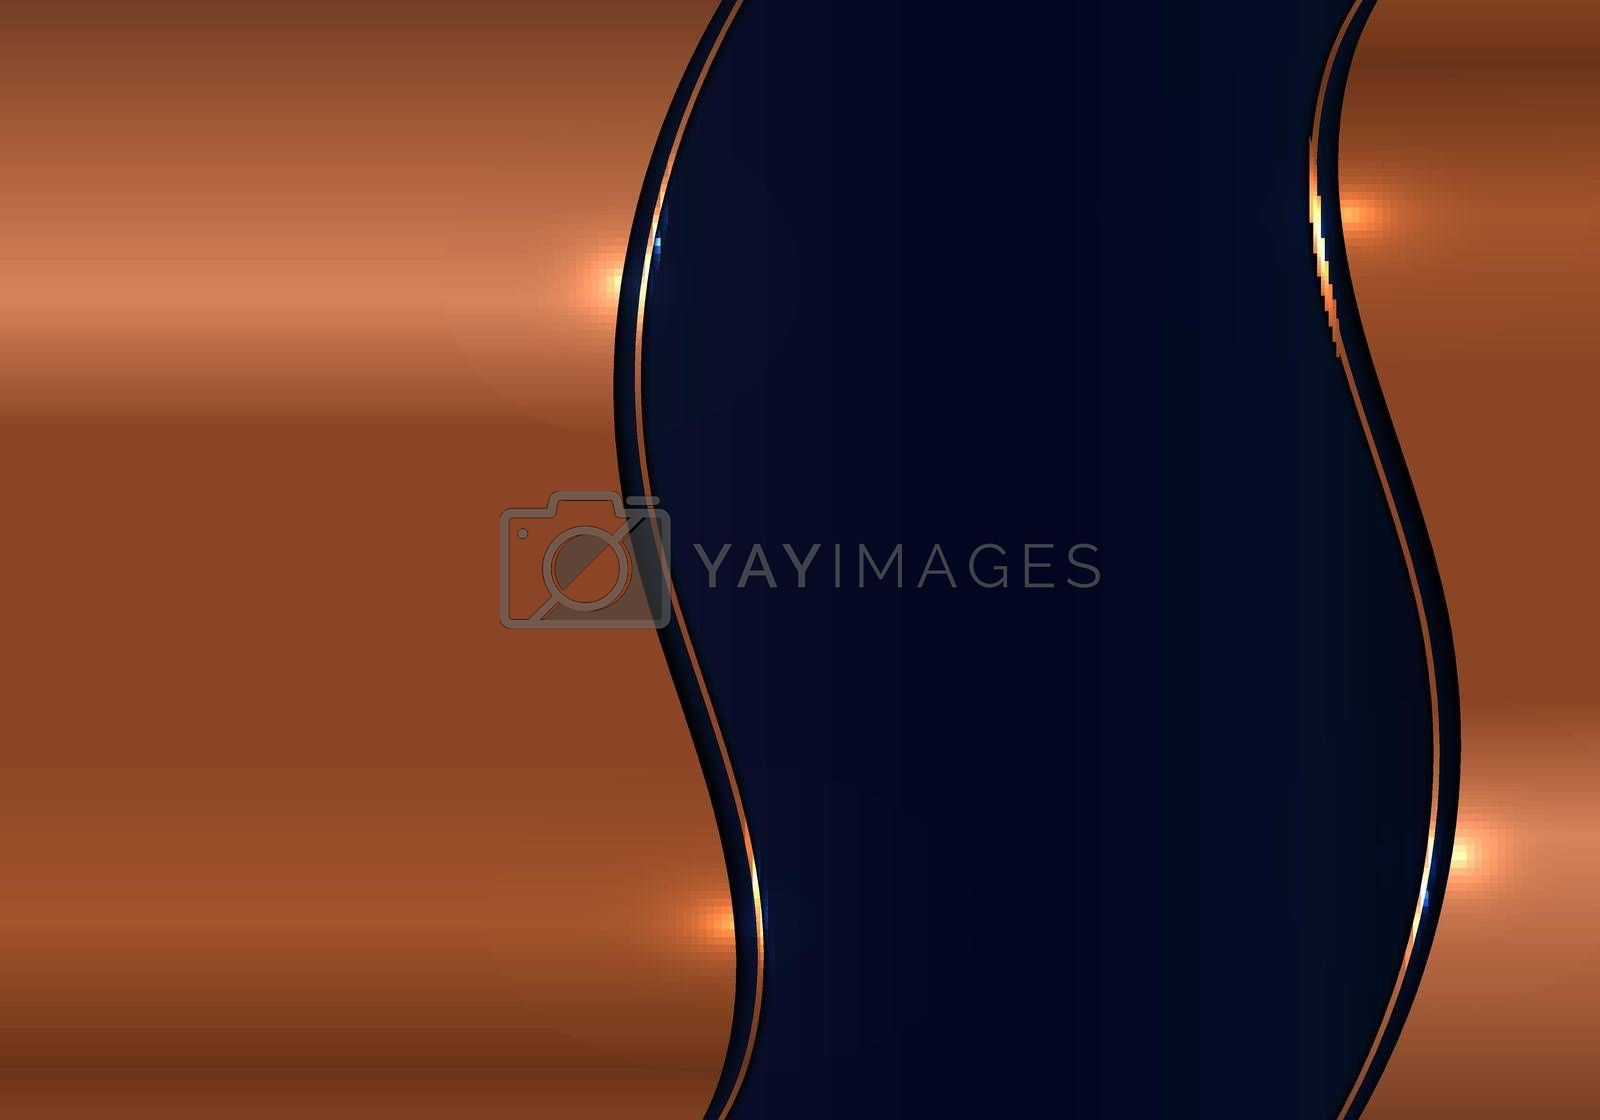 Royalty free image of Modern template design 3D wave gold metal texture on blue shiny background luxury background by phochi